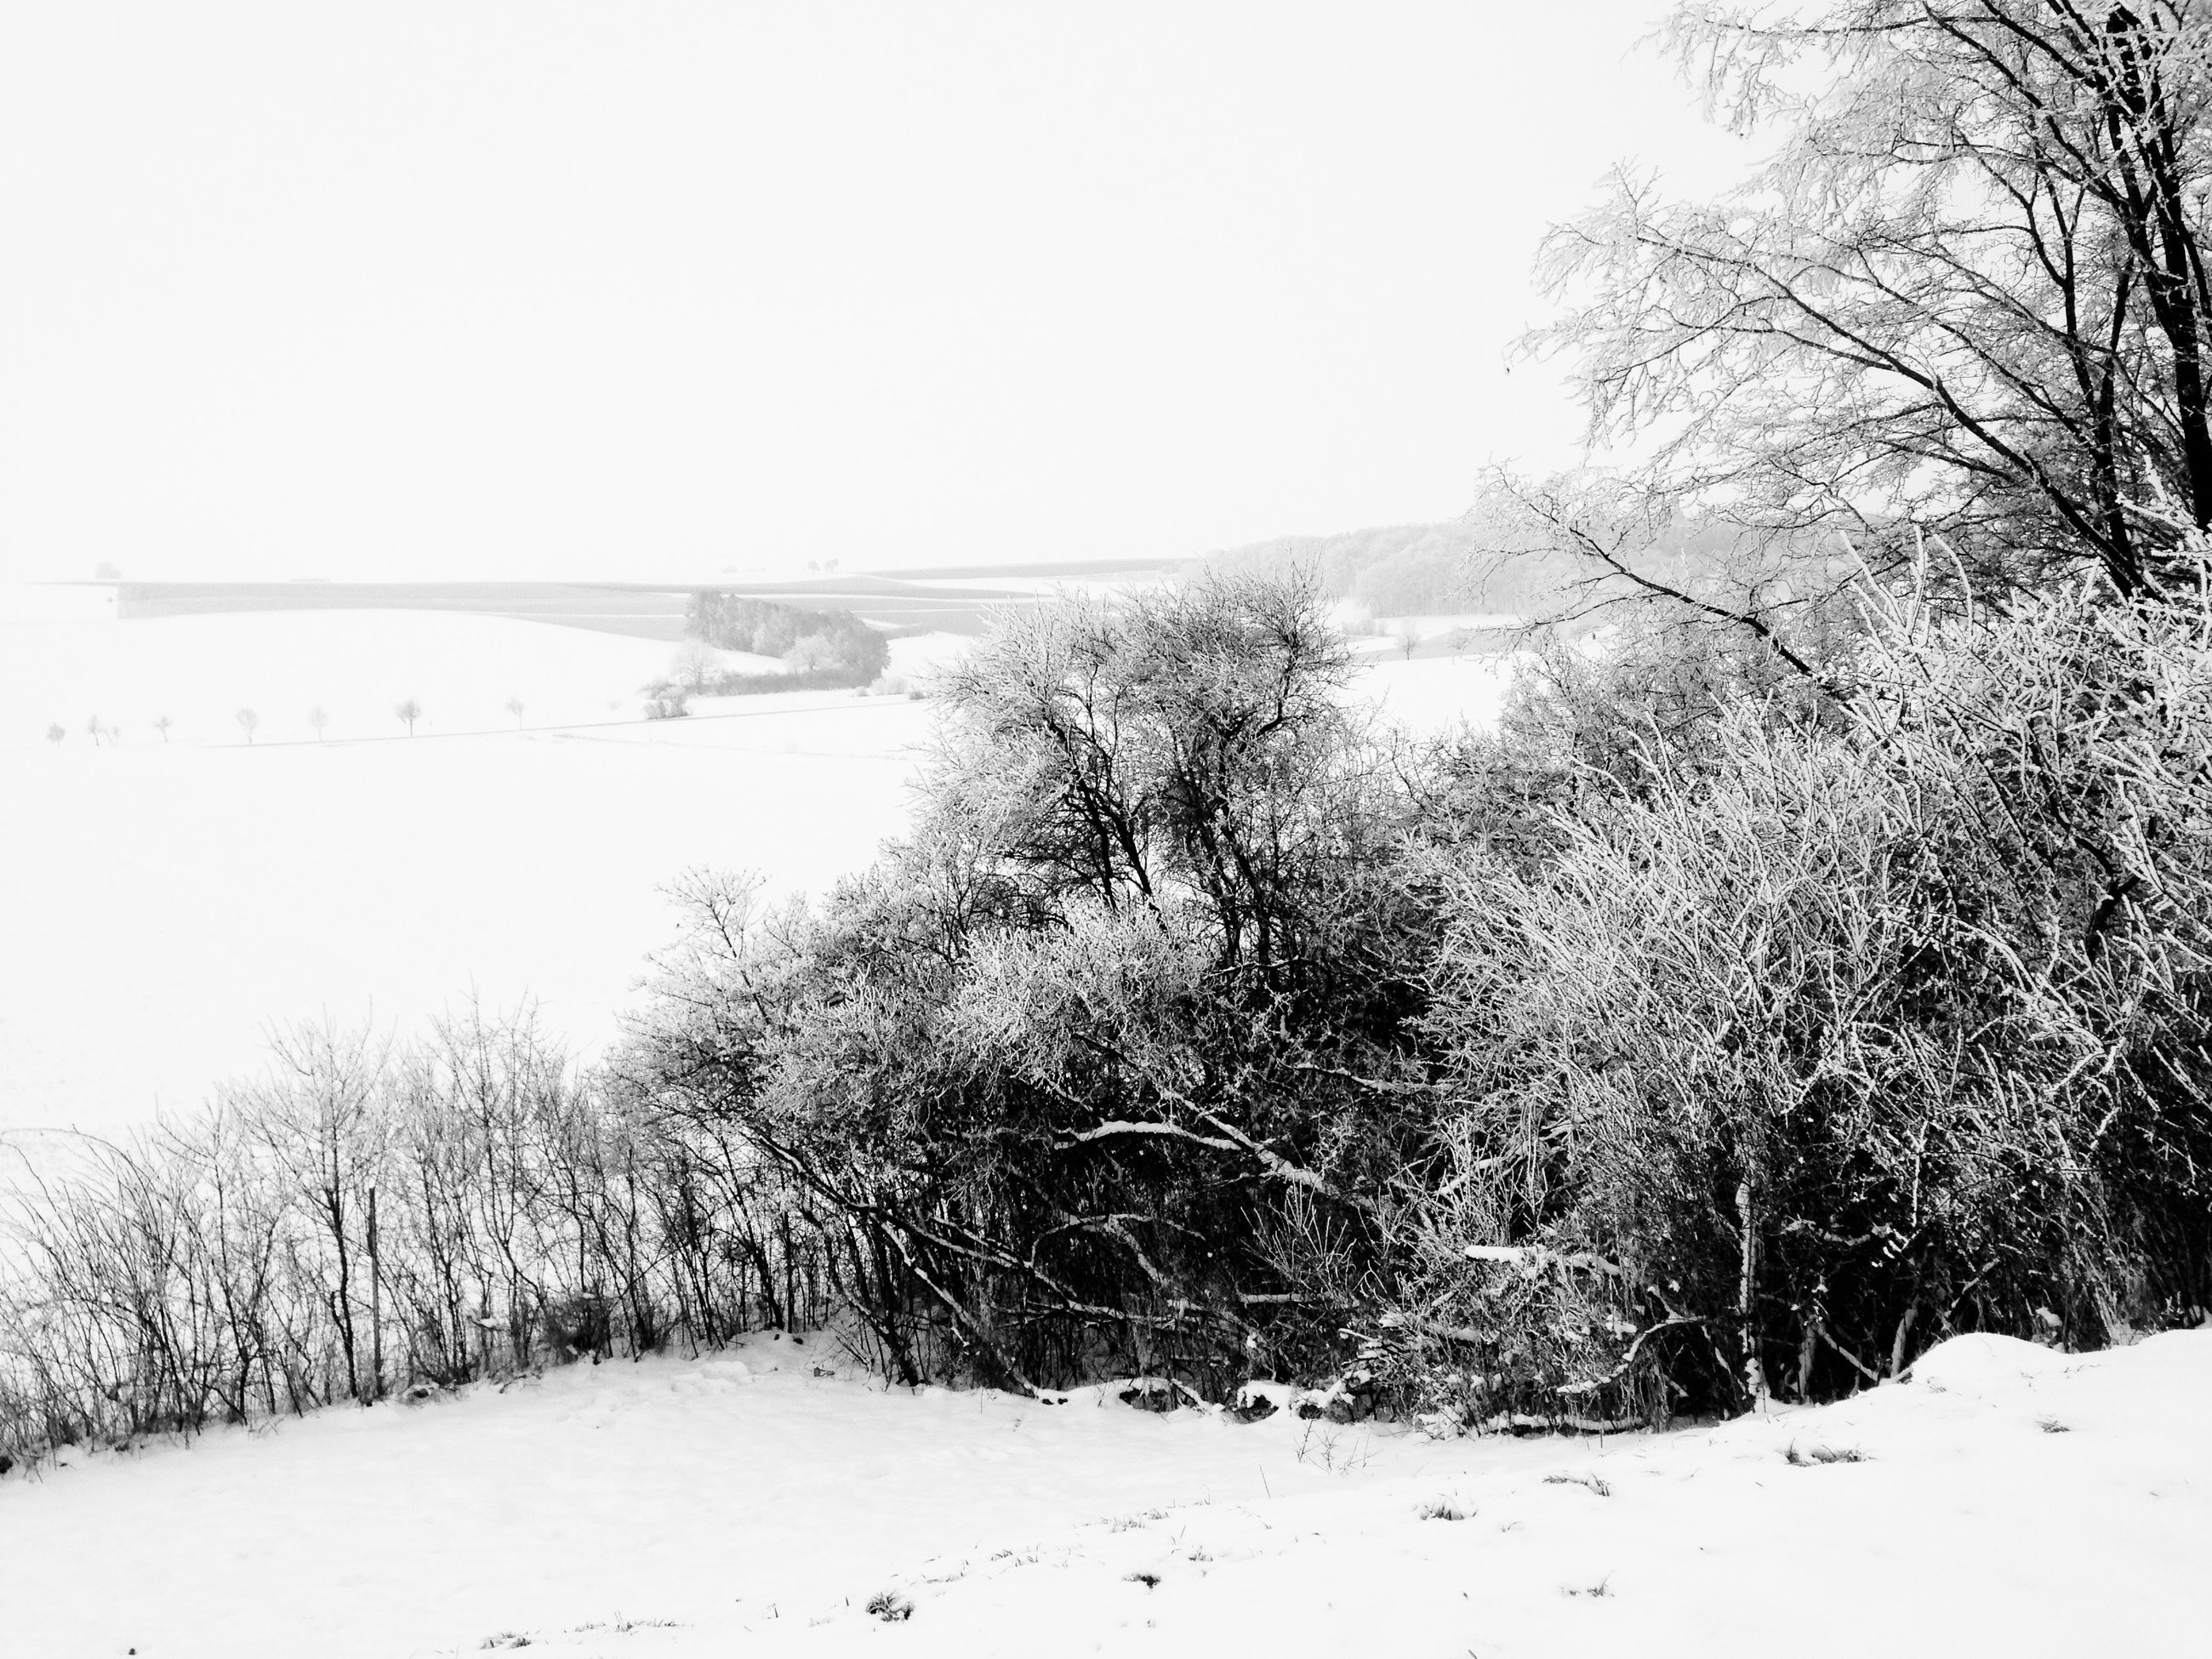 snow, winter, cold temperature, season, tree, weather, tranquil scene, tranquility, covering, clear sky, landscape, beauty in nature, scenics, nature, frozen, white color, snow covered, bare tree, non-urban scene, covered